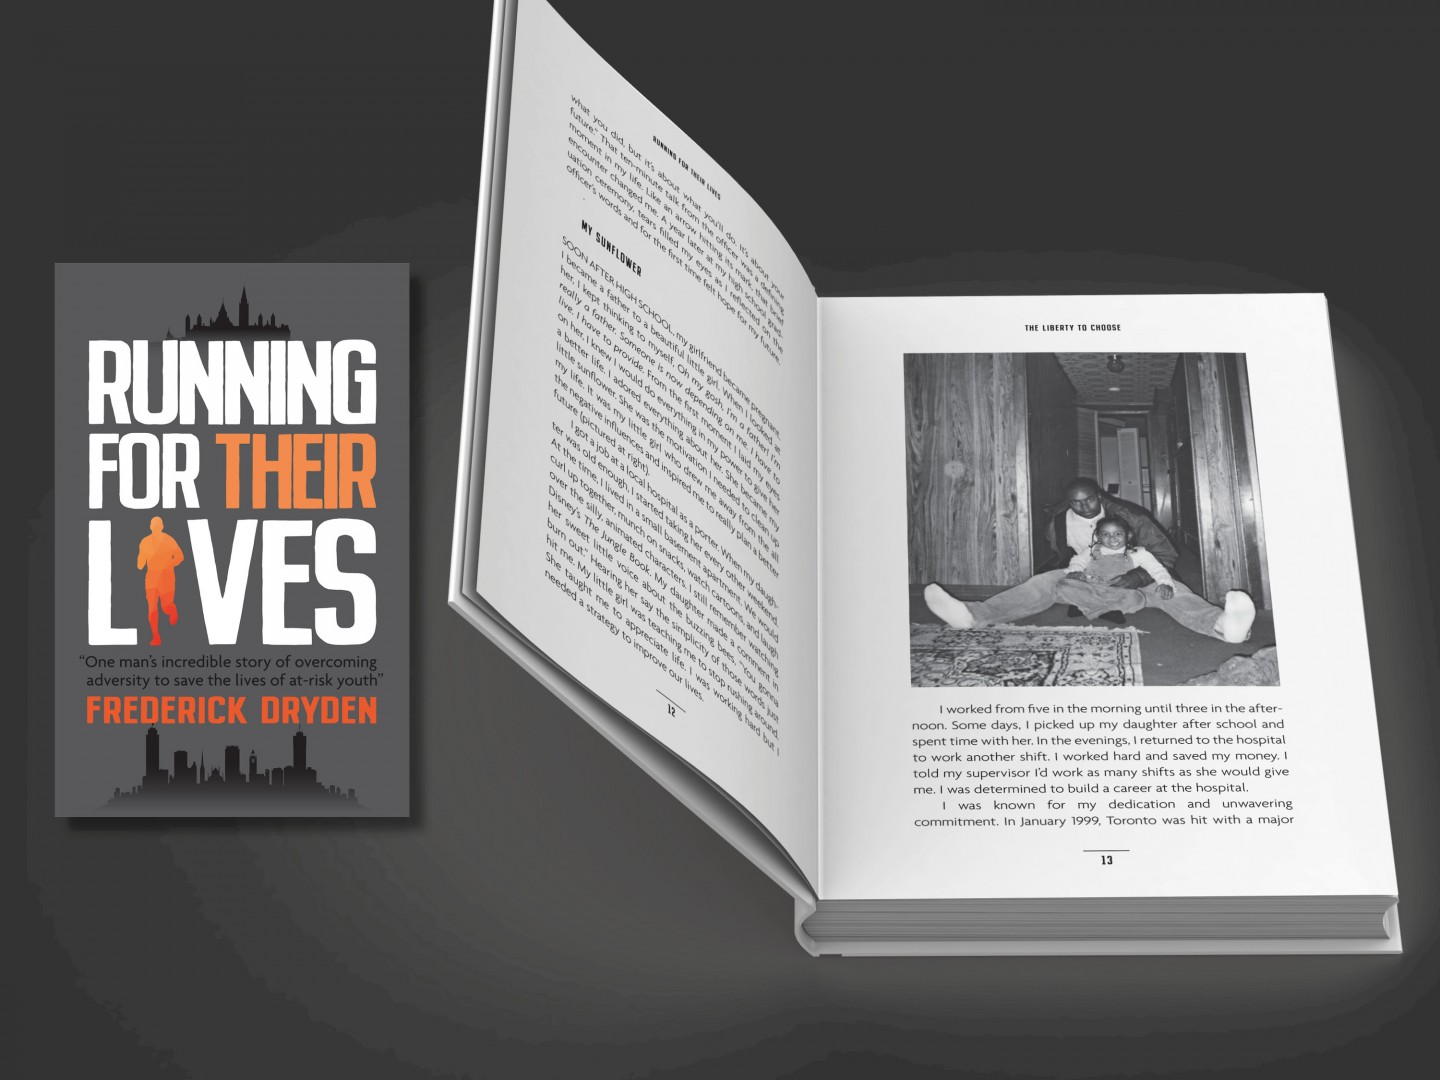 Running for their lives book